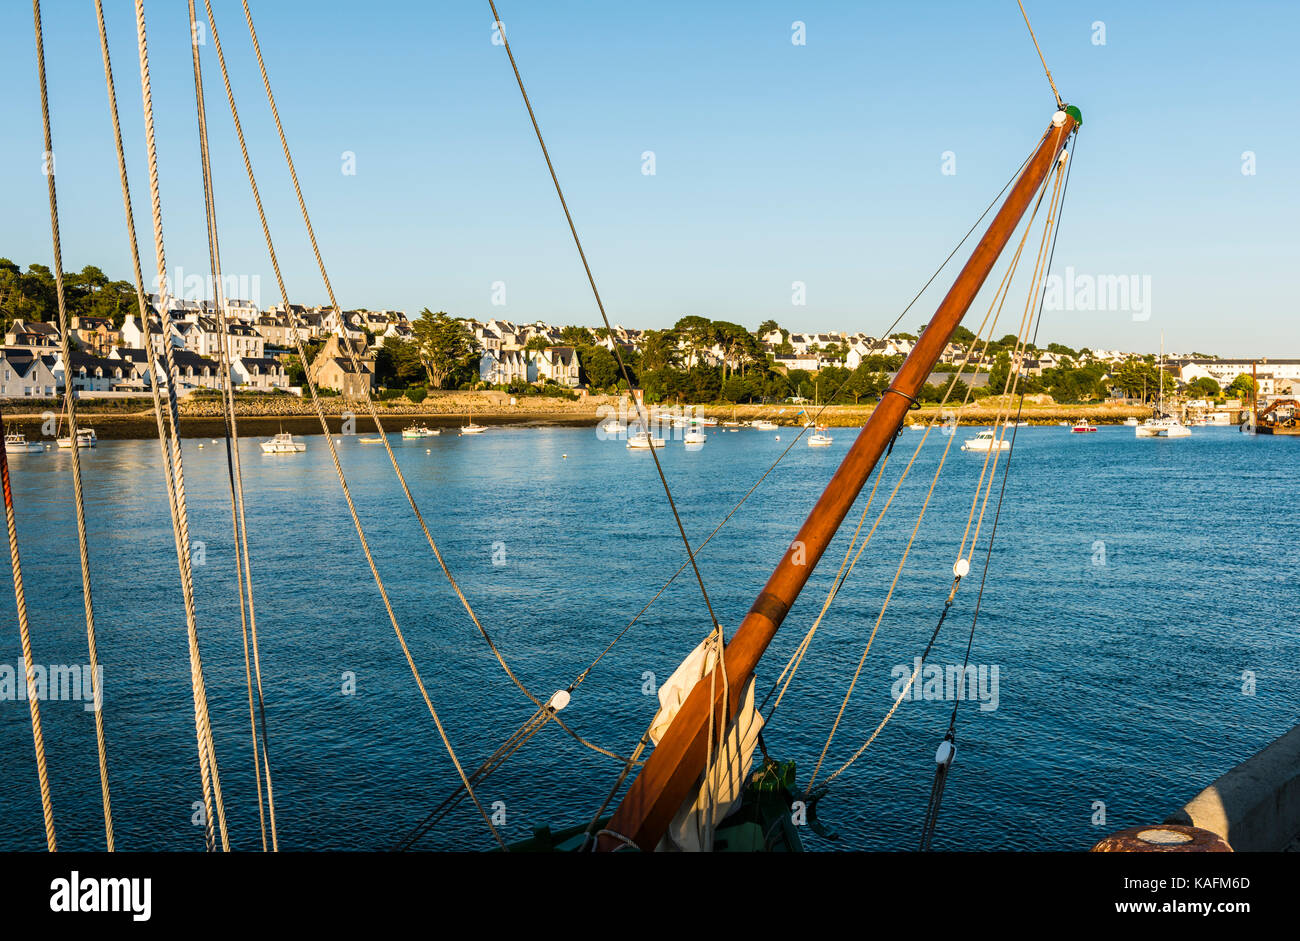 Abstract detail of the front of a sail boat in Brittany, France - Stock Image